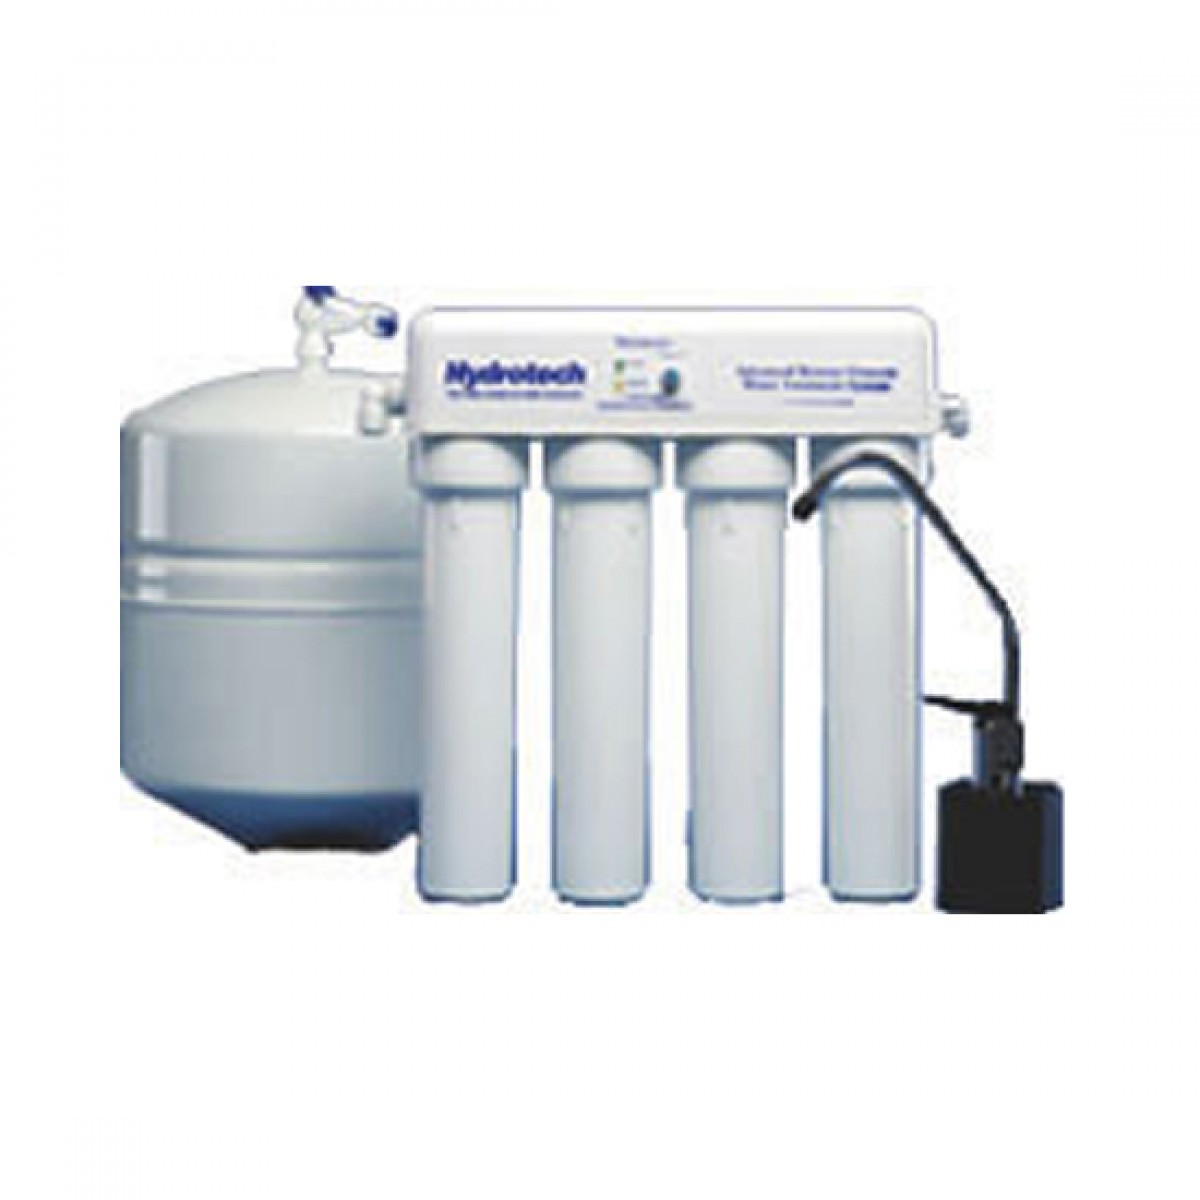 Hydrotech 4vtfc75g Pb Pushbutton Reverse Osmosis Filter System